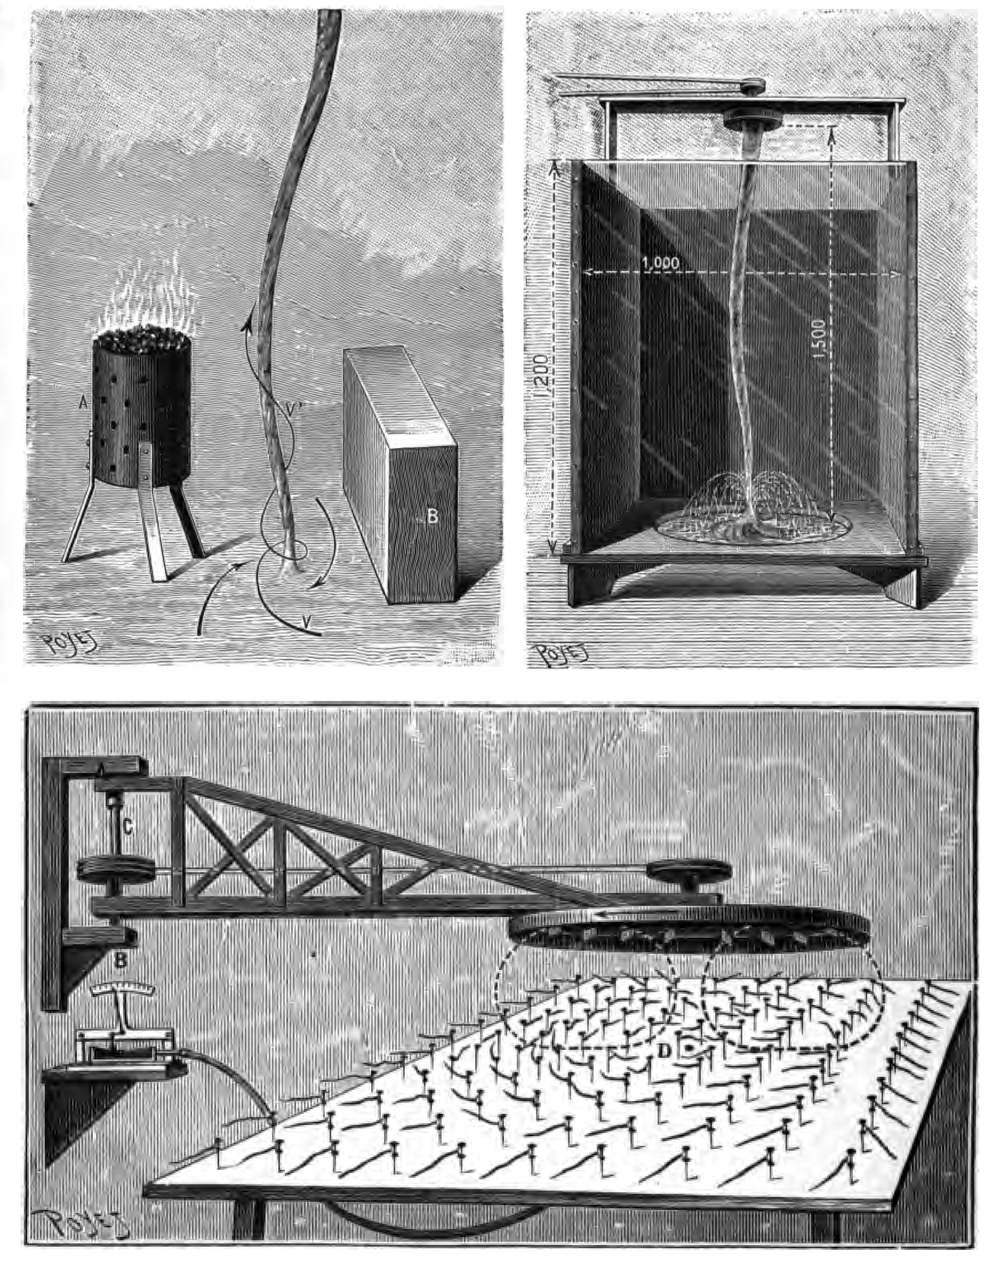 source: Weyher, C. L., 1889: Sur les tourbillons, trombes, tempêtes et sphères tournantes: Etude et expériences  [On whirlwinds, tornadoes, thunderstorms and rotating spheres: Study and experiments], Gauthier-Villars et fils ,Paris, pp. 152.  via archive.org